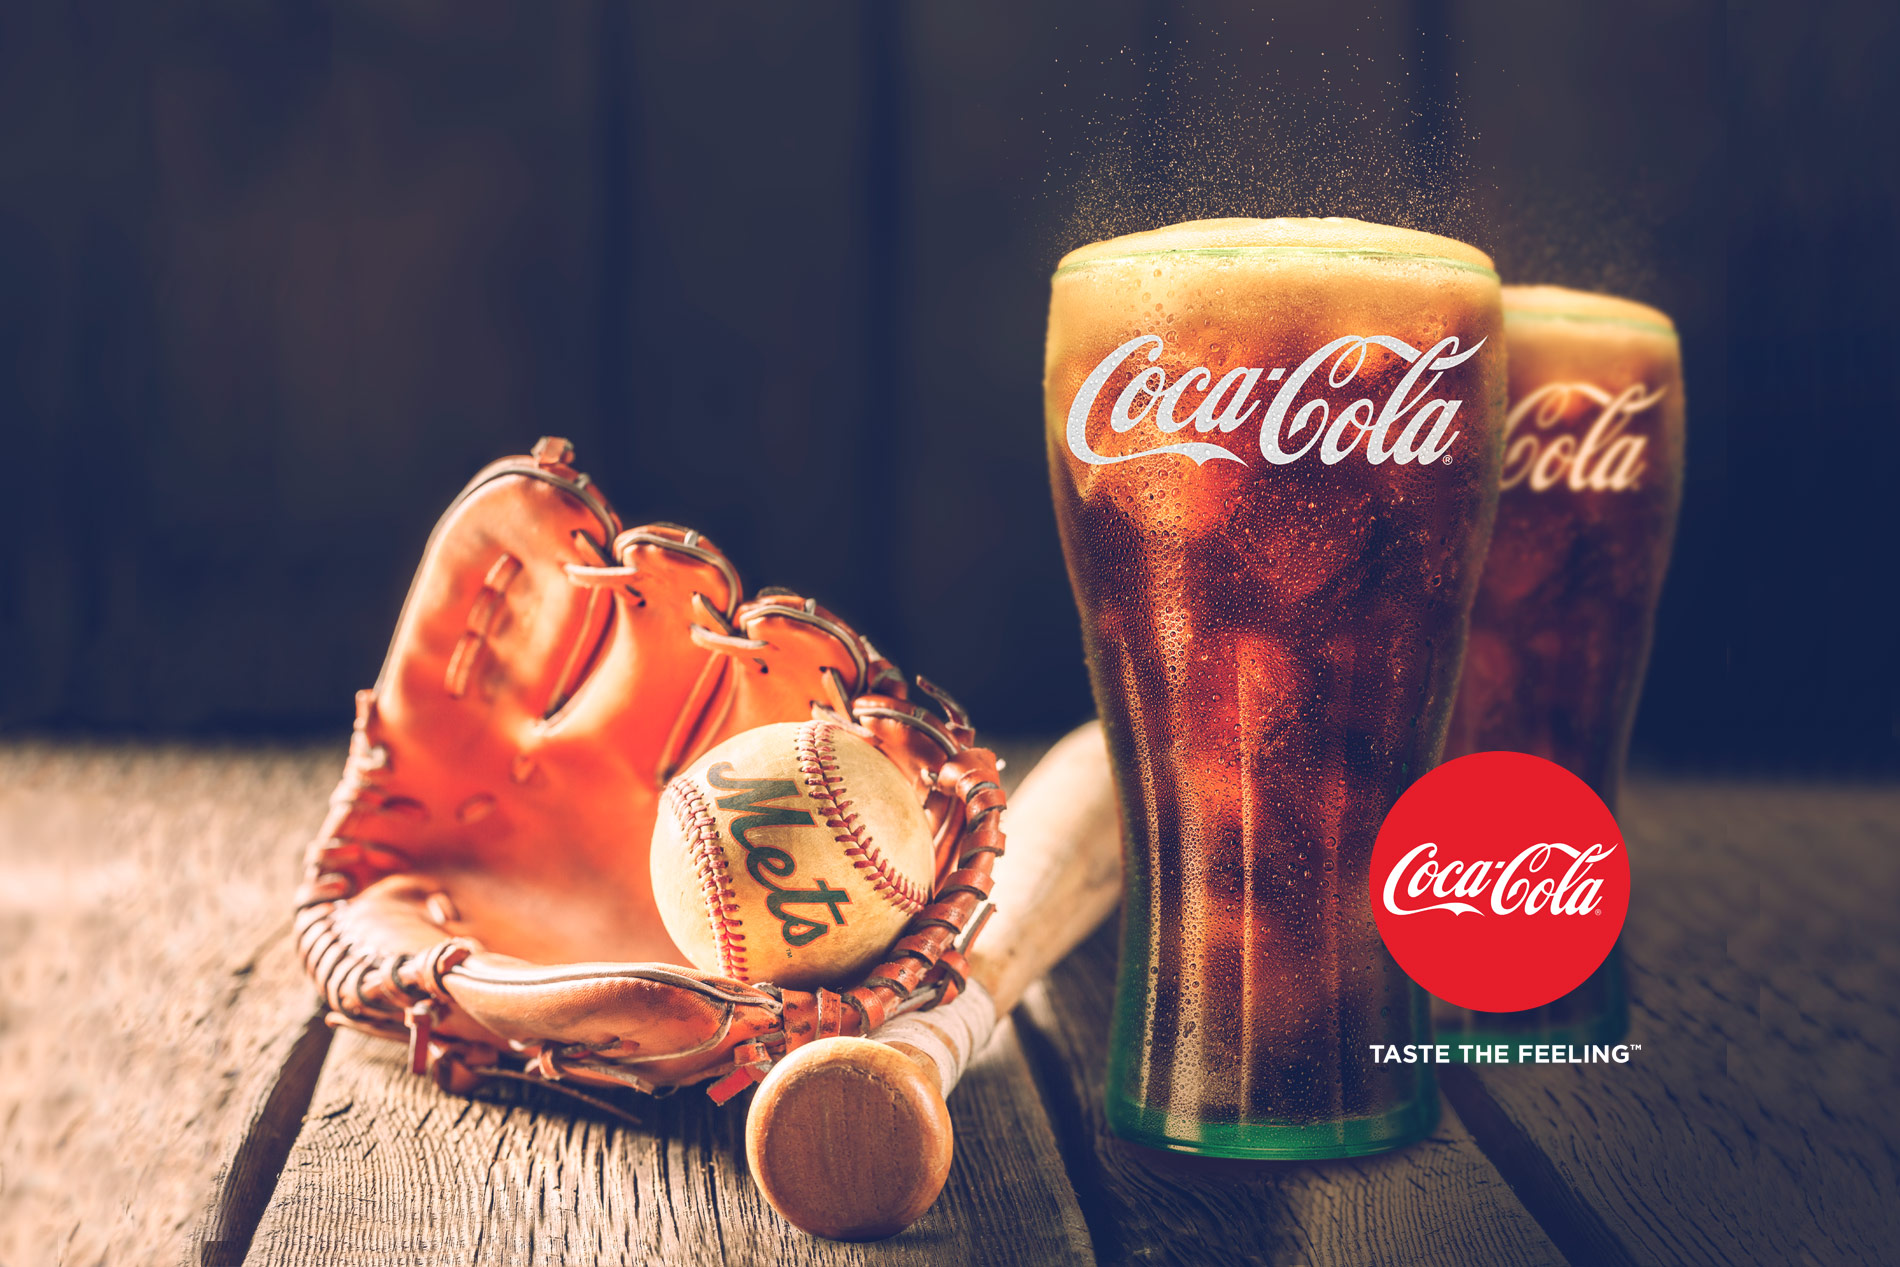 Coca-Cola NY Mets / CitiField Activation